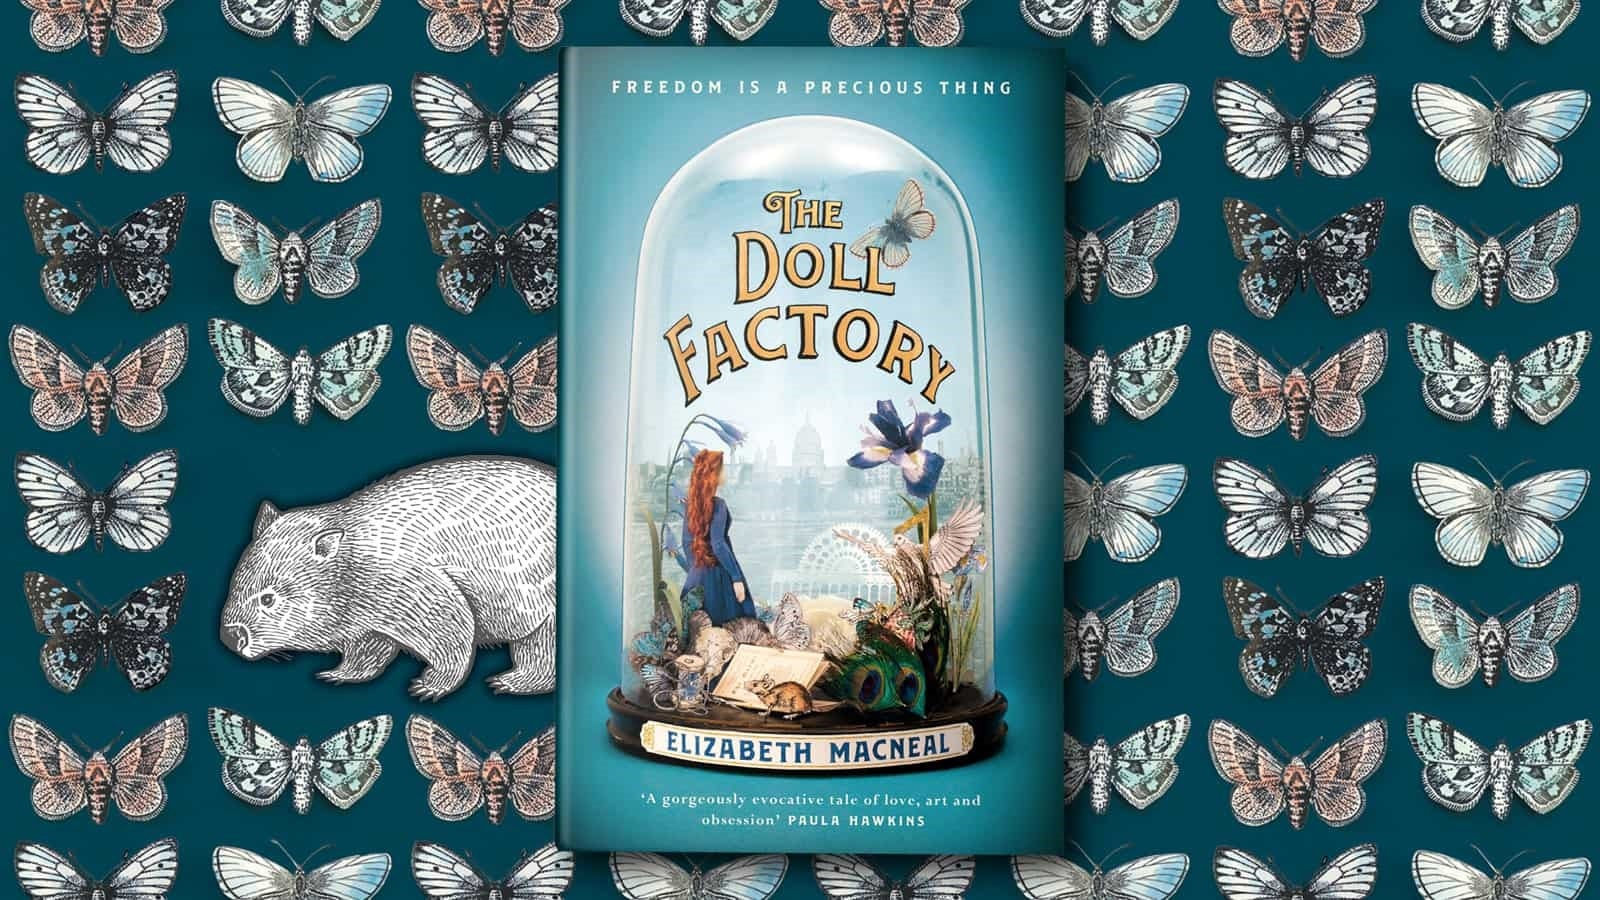 The Doll Factory book cover against an illustration of butterflies and a wombat